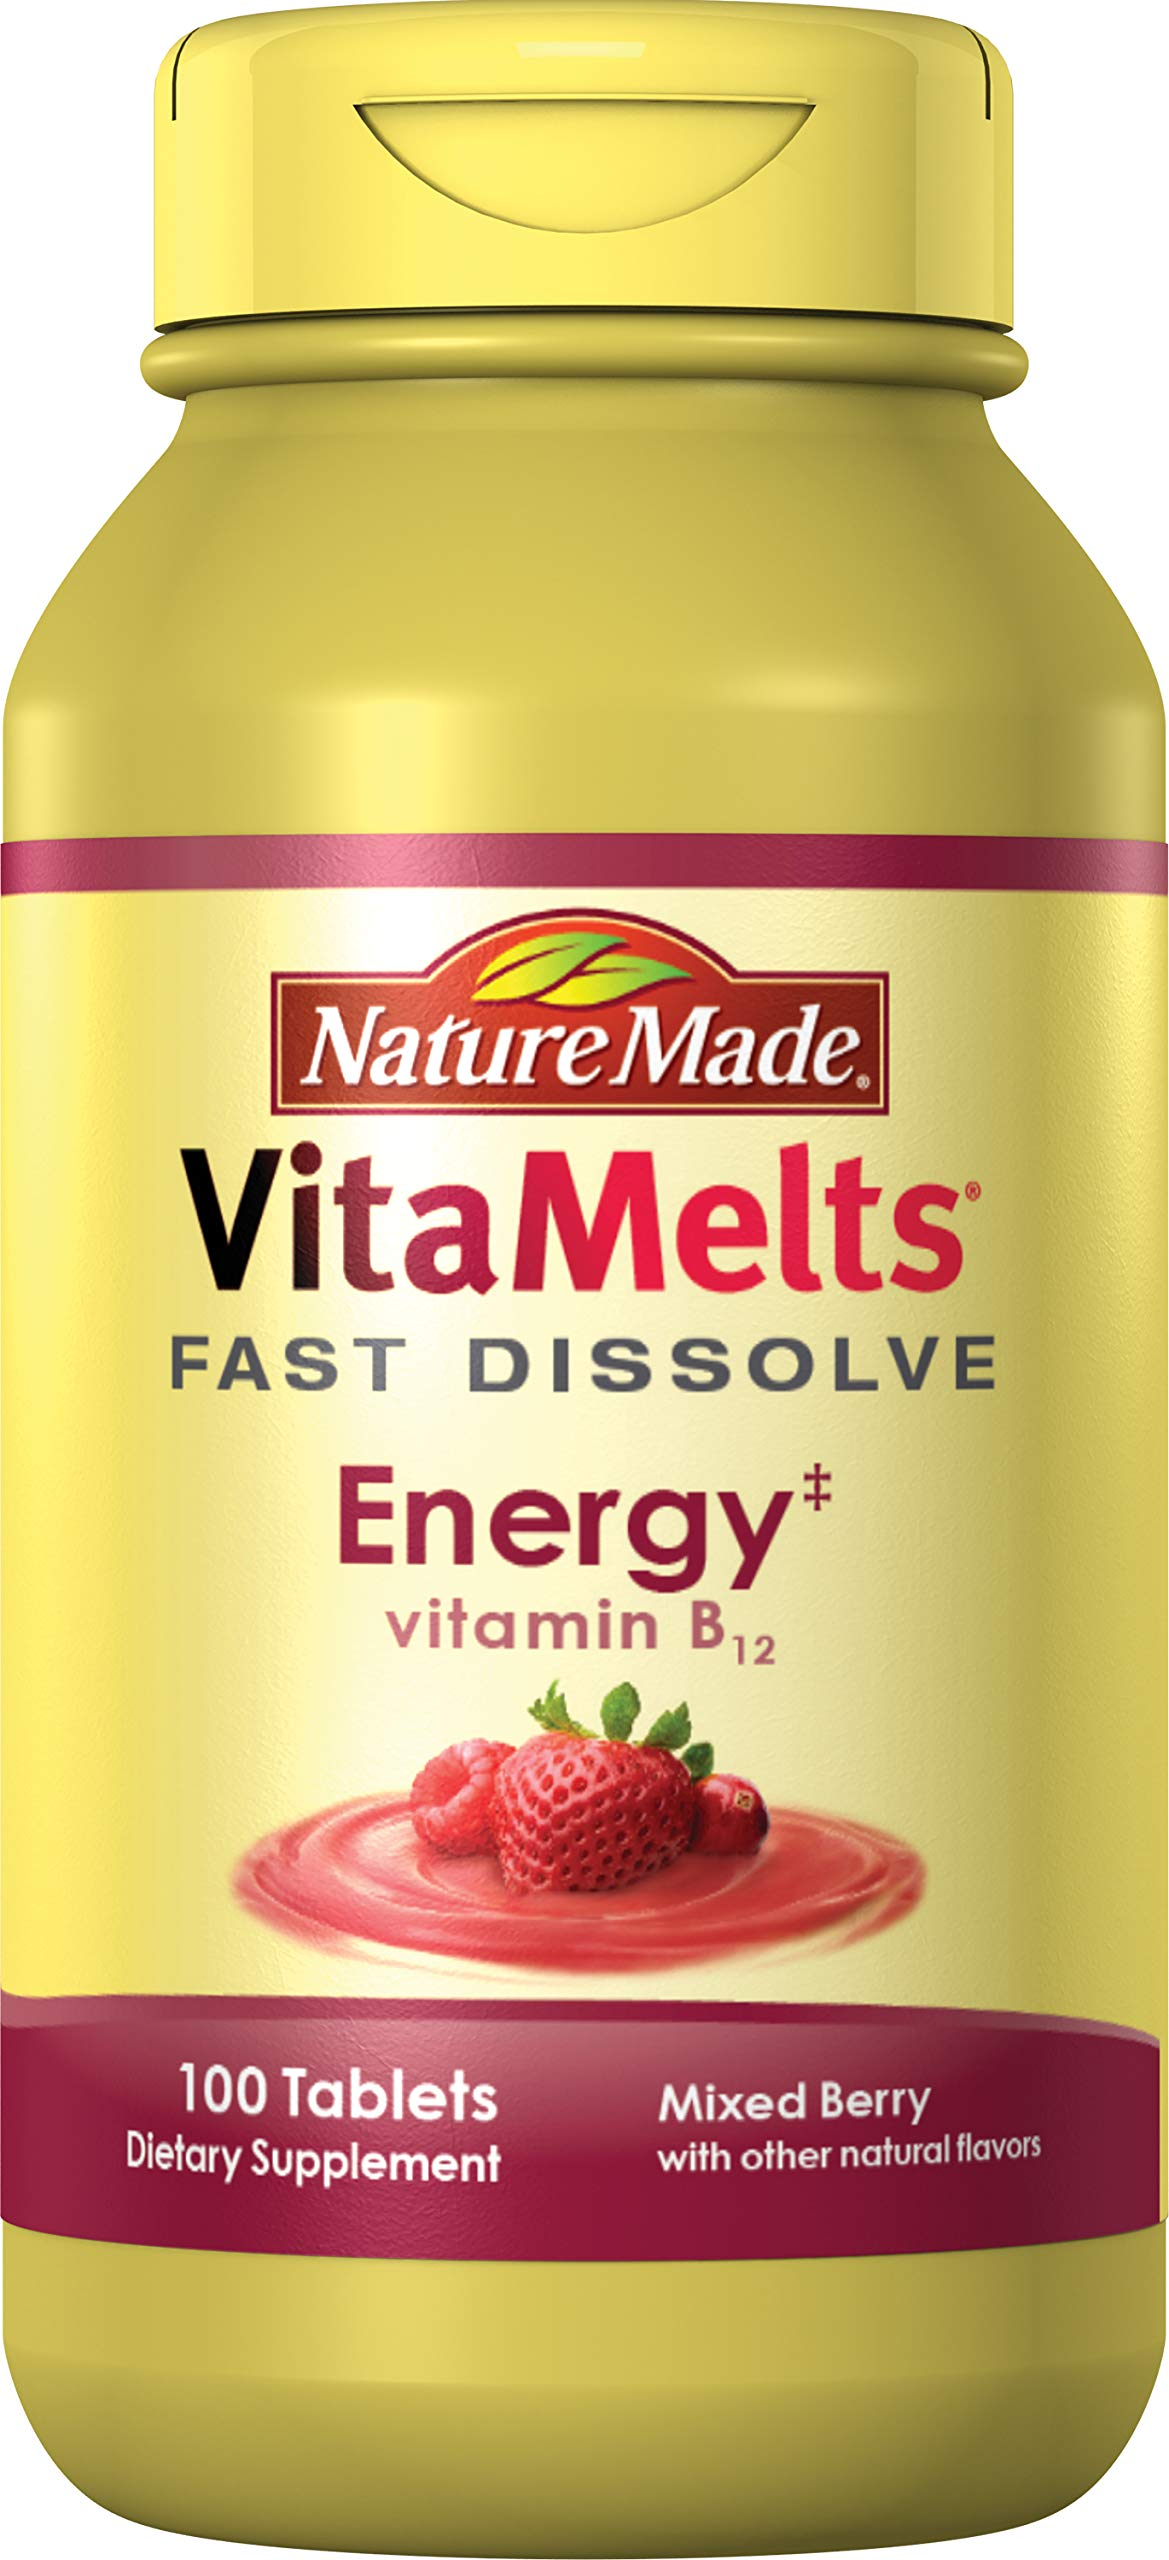 Nature Made VitaMelts Fast Dissolve Energy Vitamin B12 1500 mcg 100 ct by Nature Made